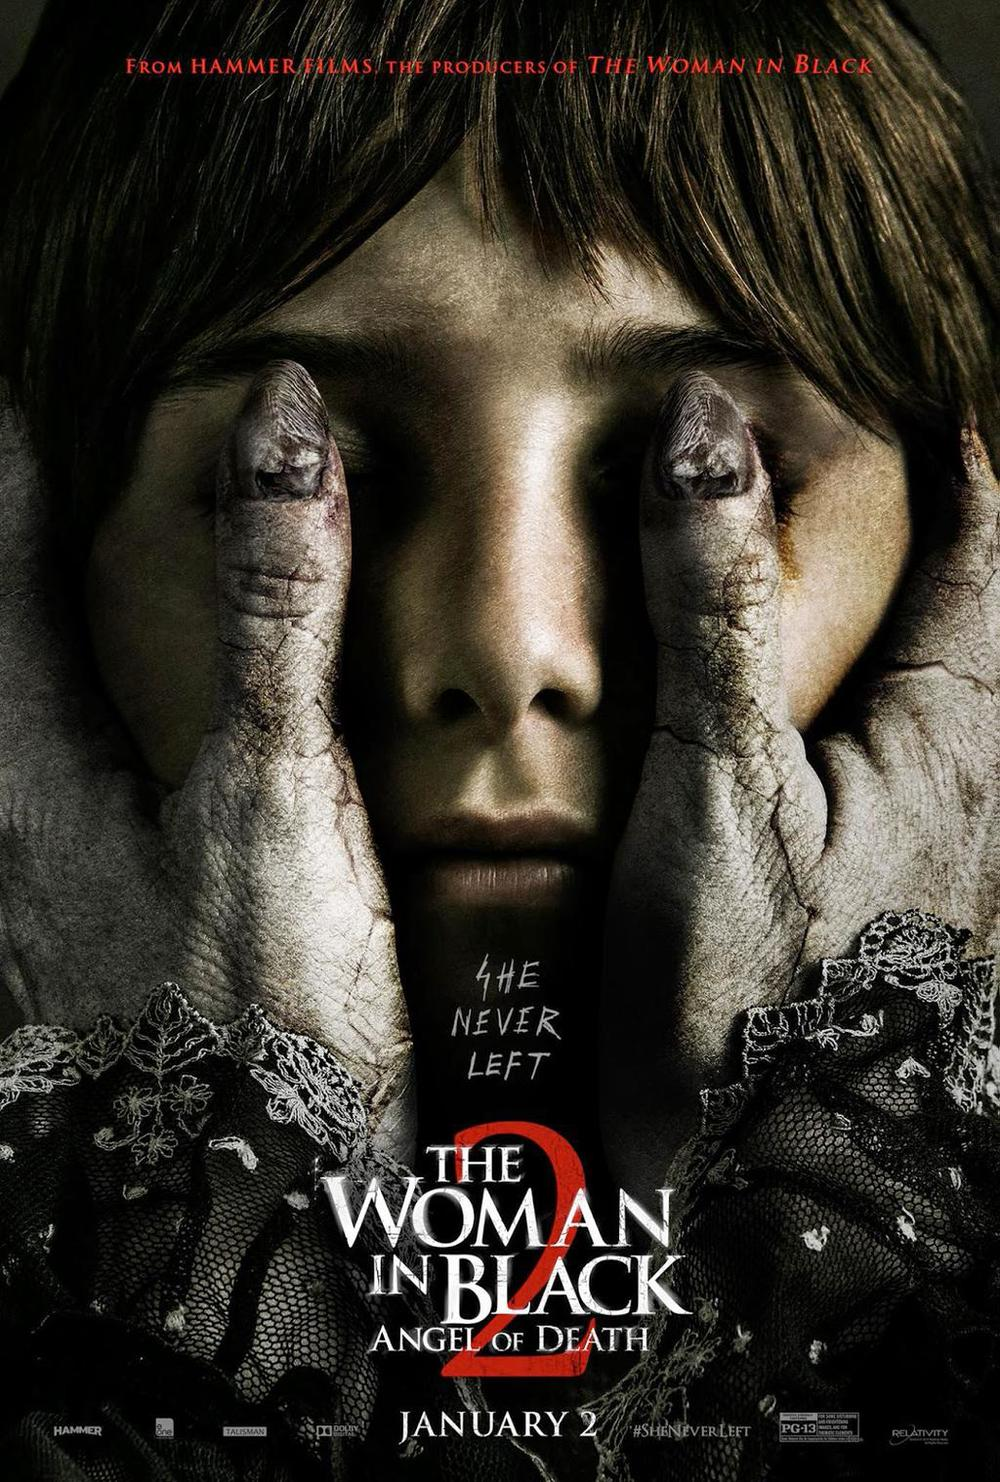 the-woman-in-black-2-angel-of-death-poster-she-never-left